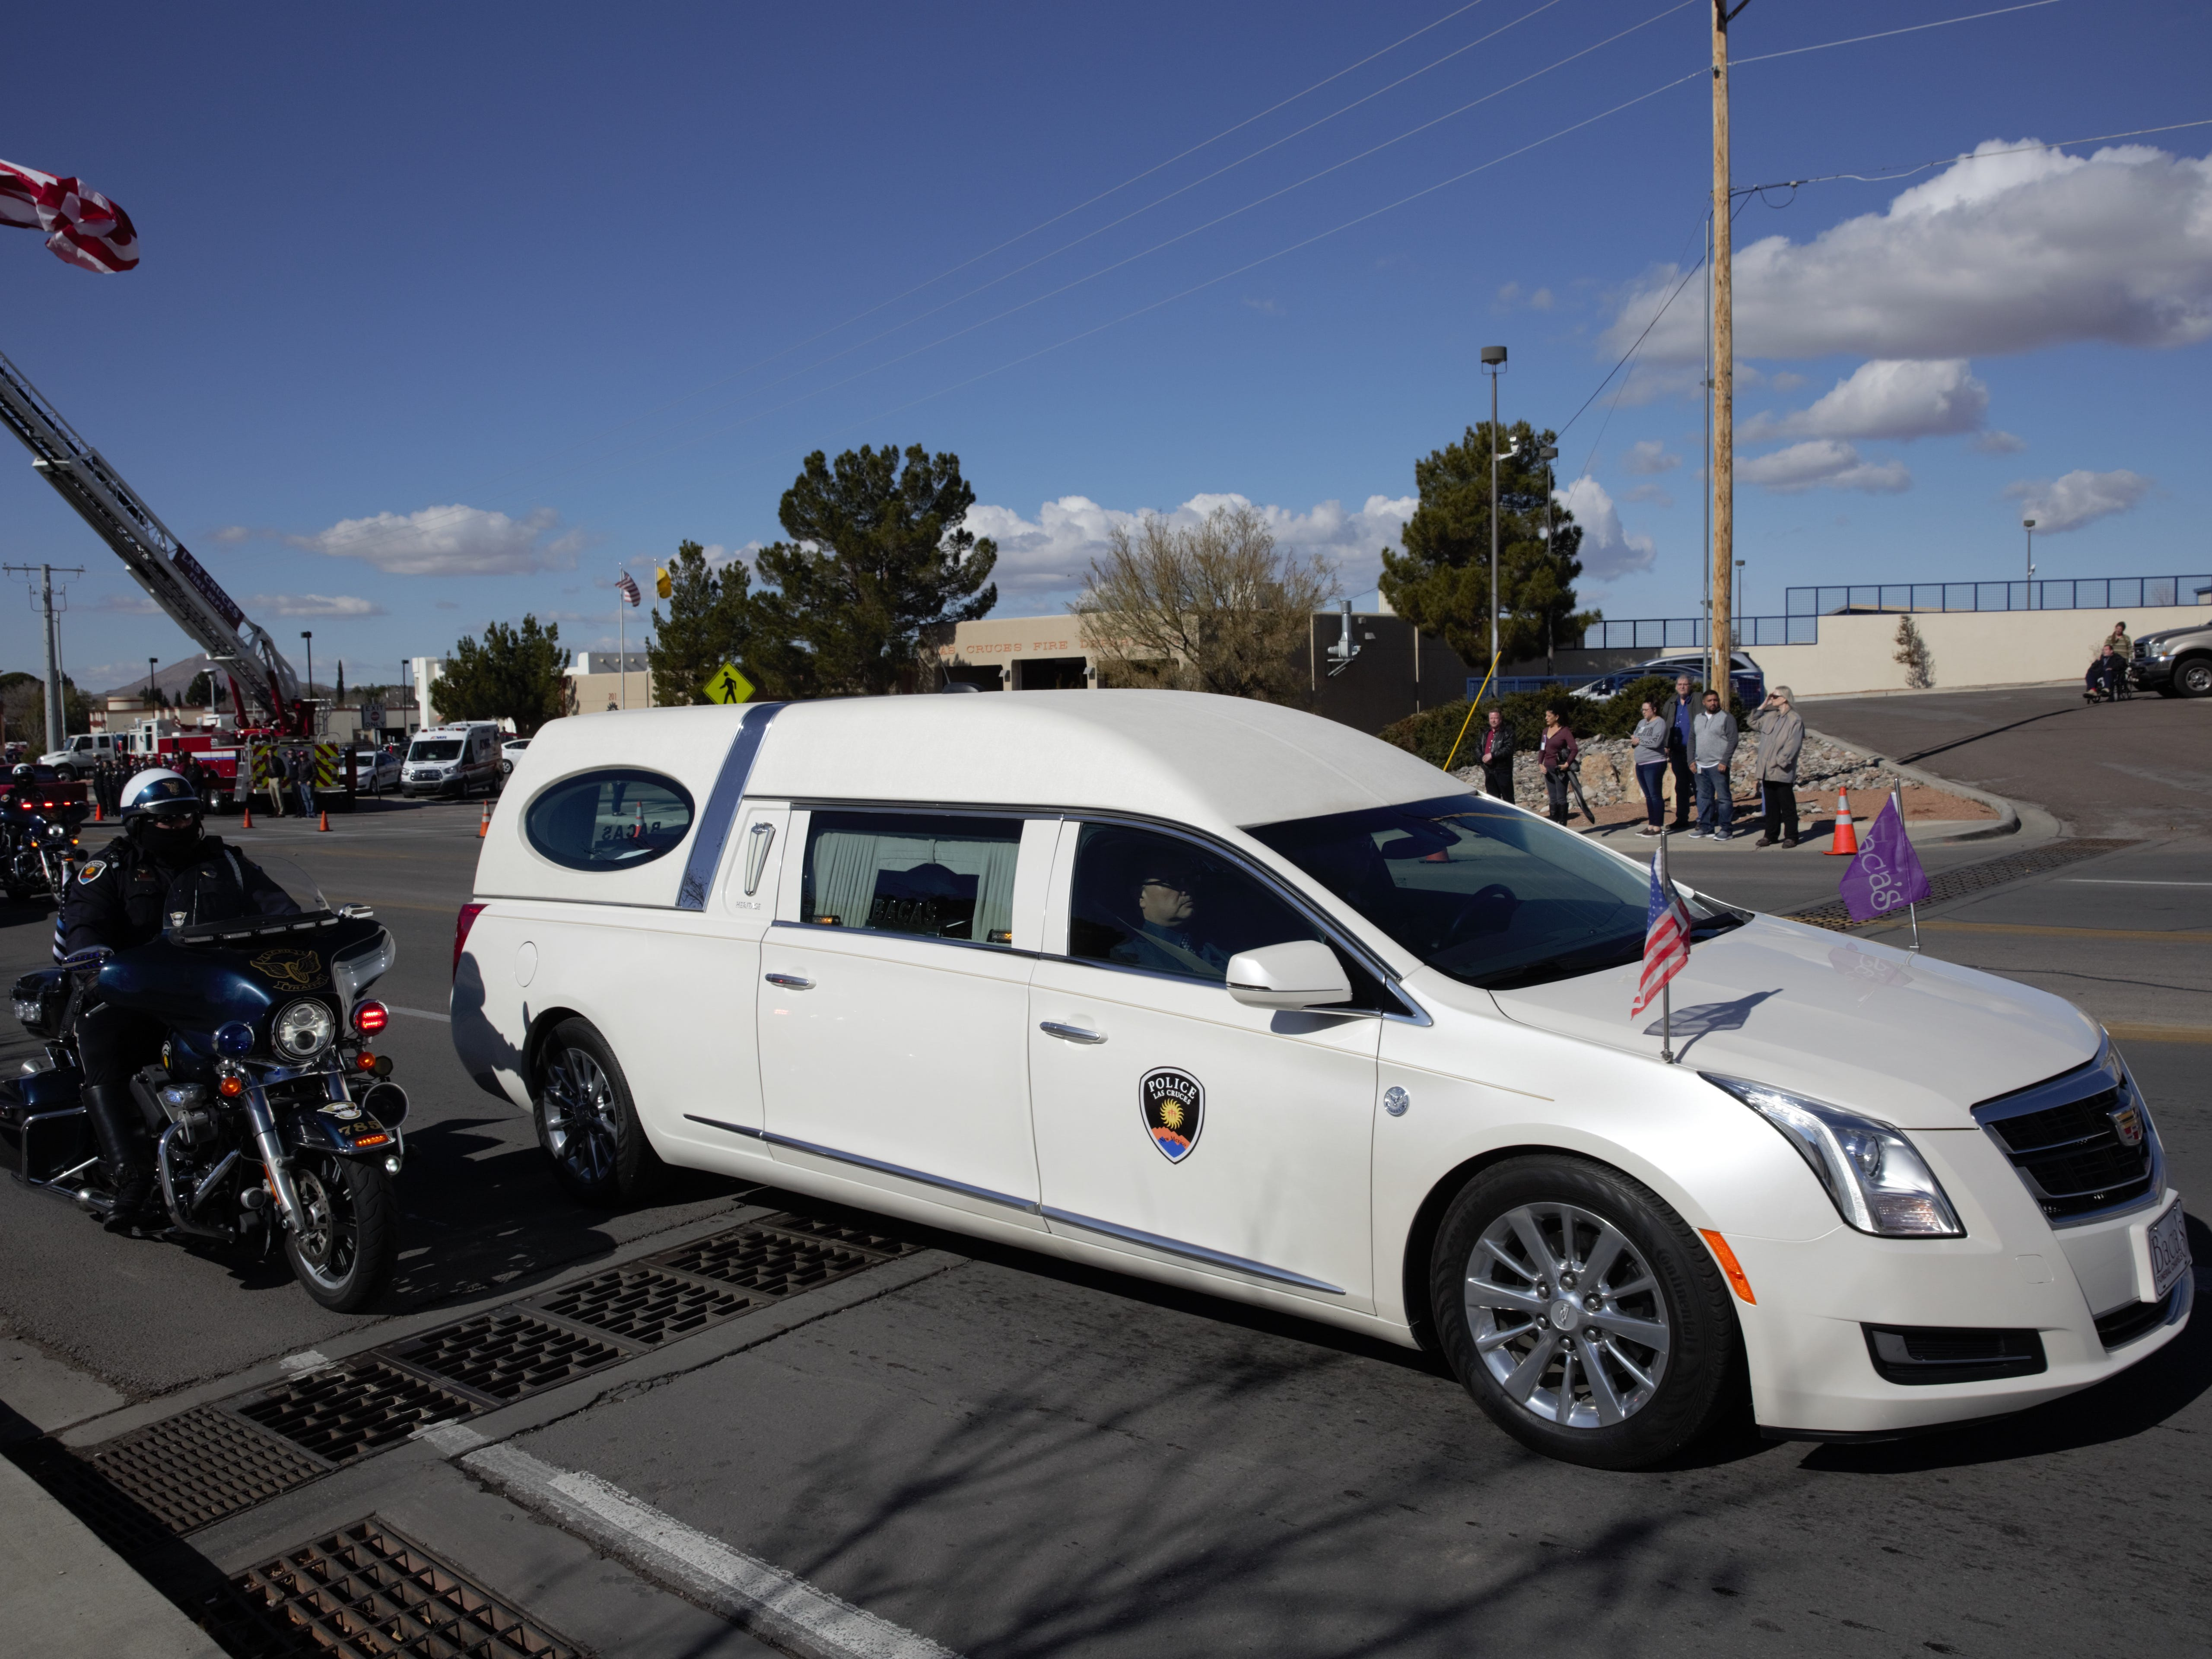 The hearse carrying the casket of former Las Cruces Police Chief Jaime Montoya is escorted by LCPD's motorcycle patrol on Friday, Jan. 11, 2019. The procession passed by the main Las Cruces police station on Picacho Avenue, where Montoya served as chief until his retirement in 2017. Montoya died recently at age 52.